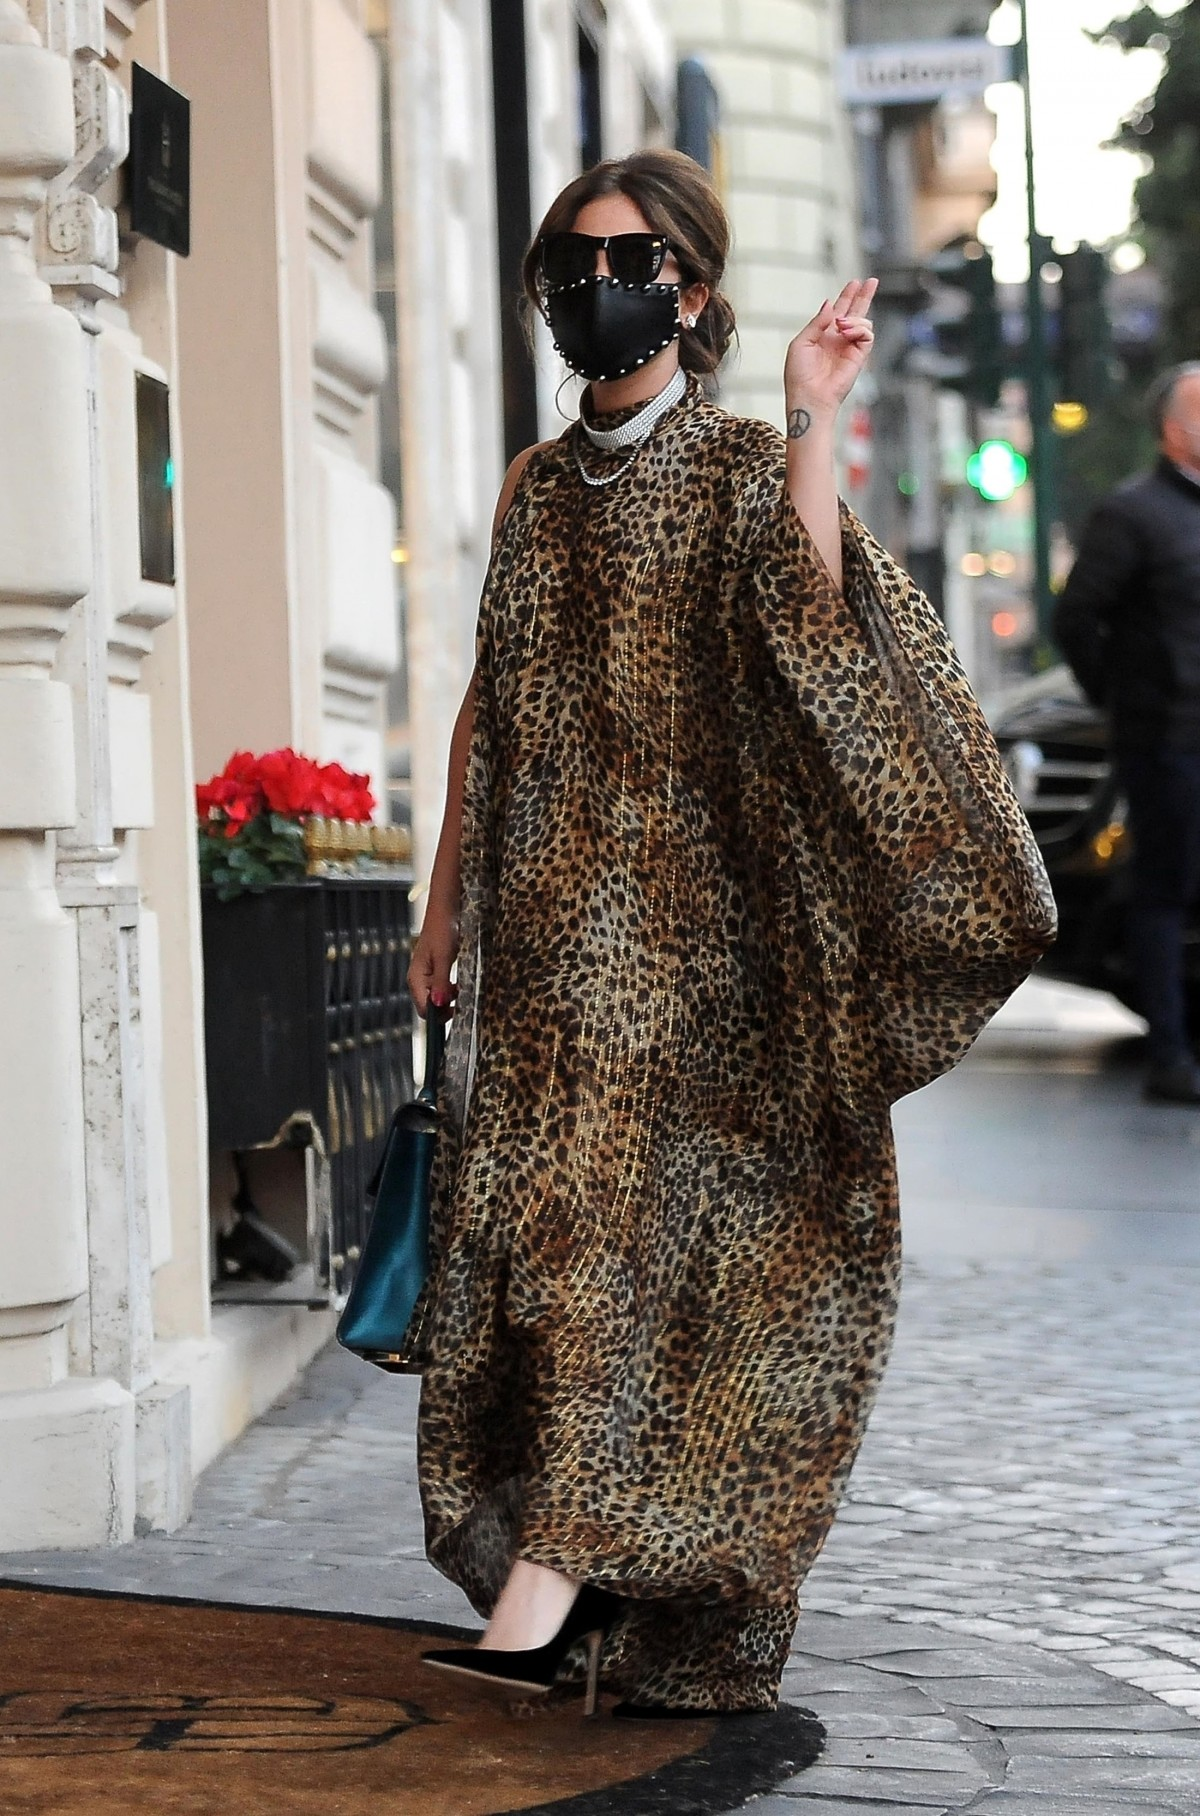 Lady Gaga looks every inch a glamourous pop star wearing her animal-printed kaftan out in Rome